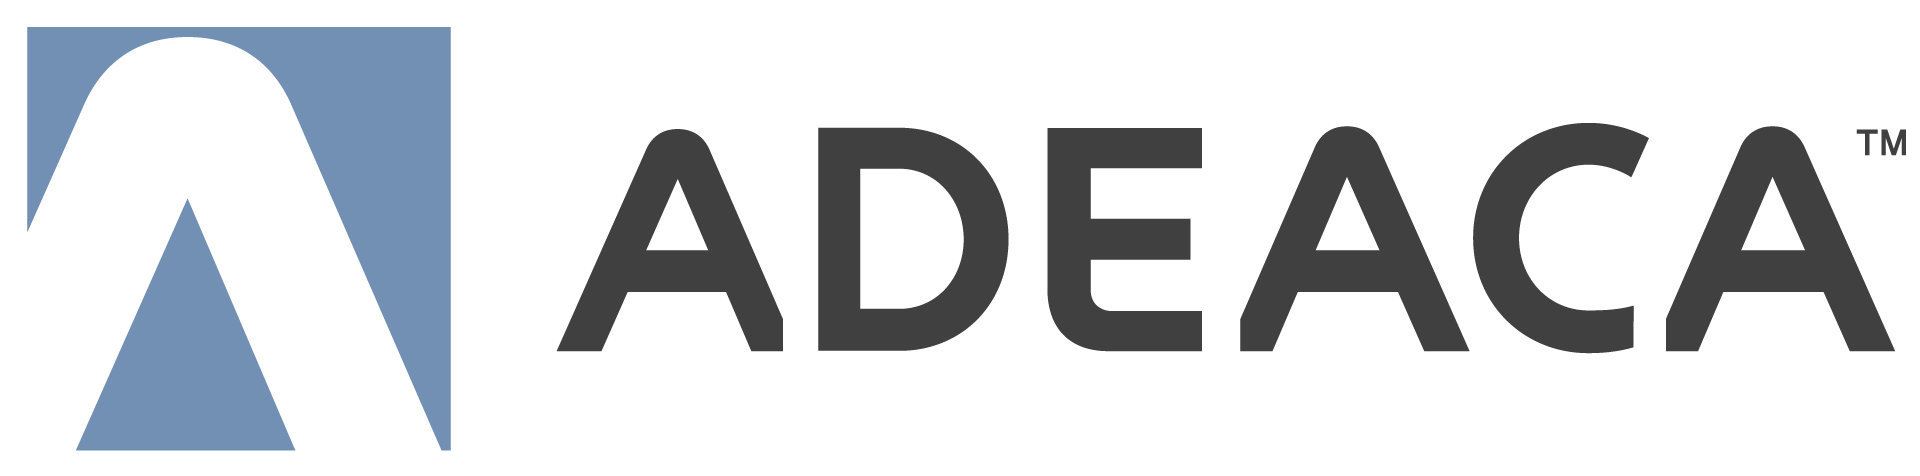 Adeaca Sees All-in-One Solution for Large Project-Based Manufacturers Ideal